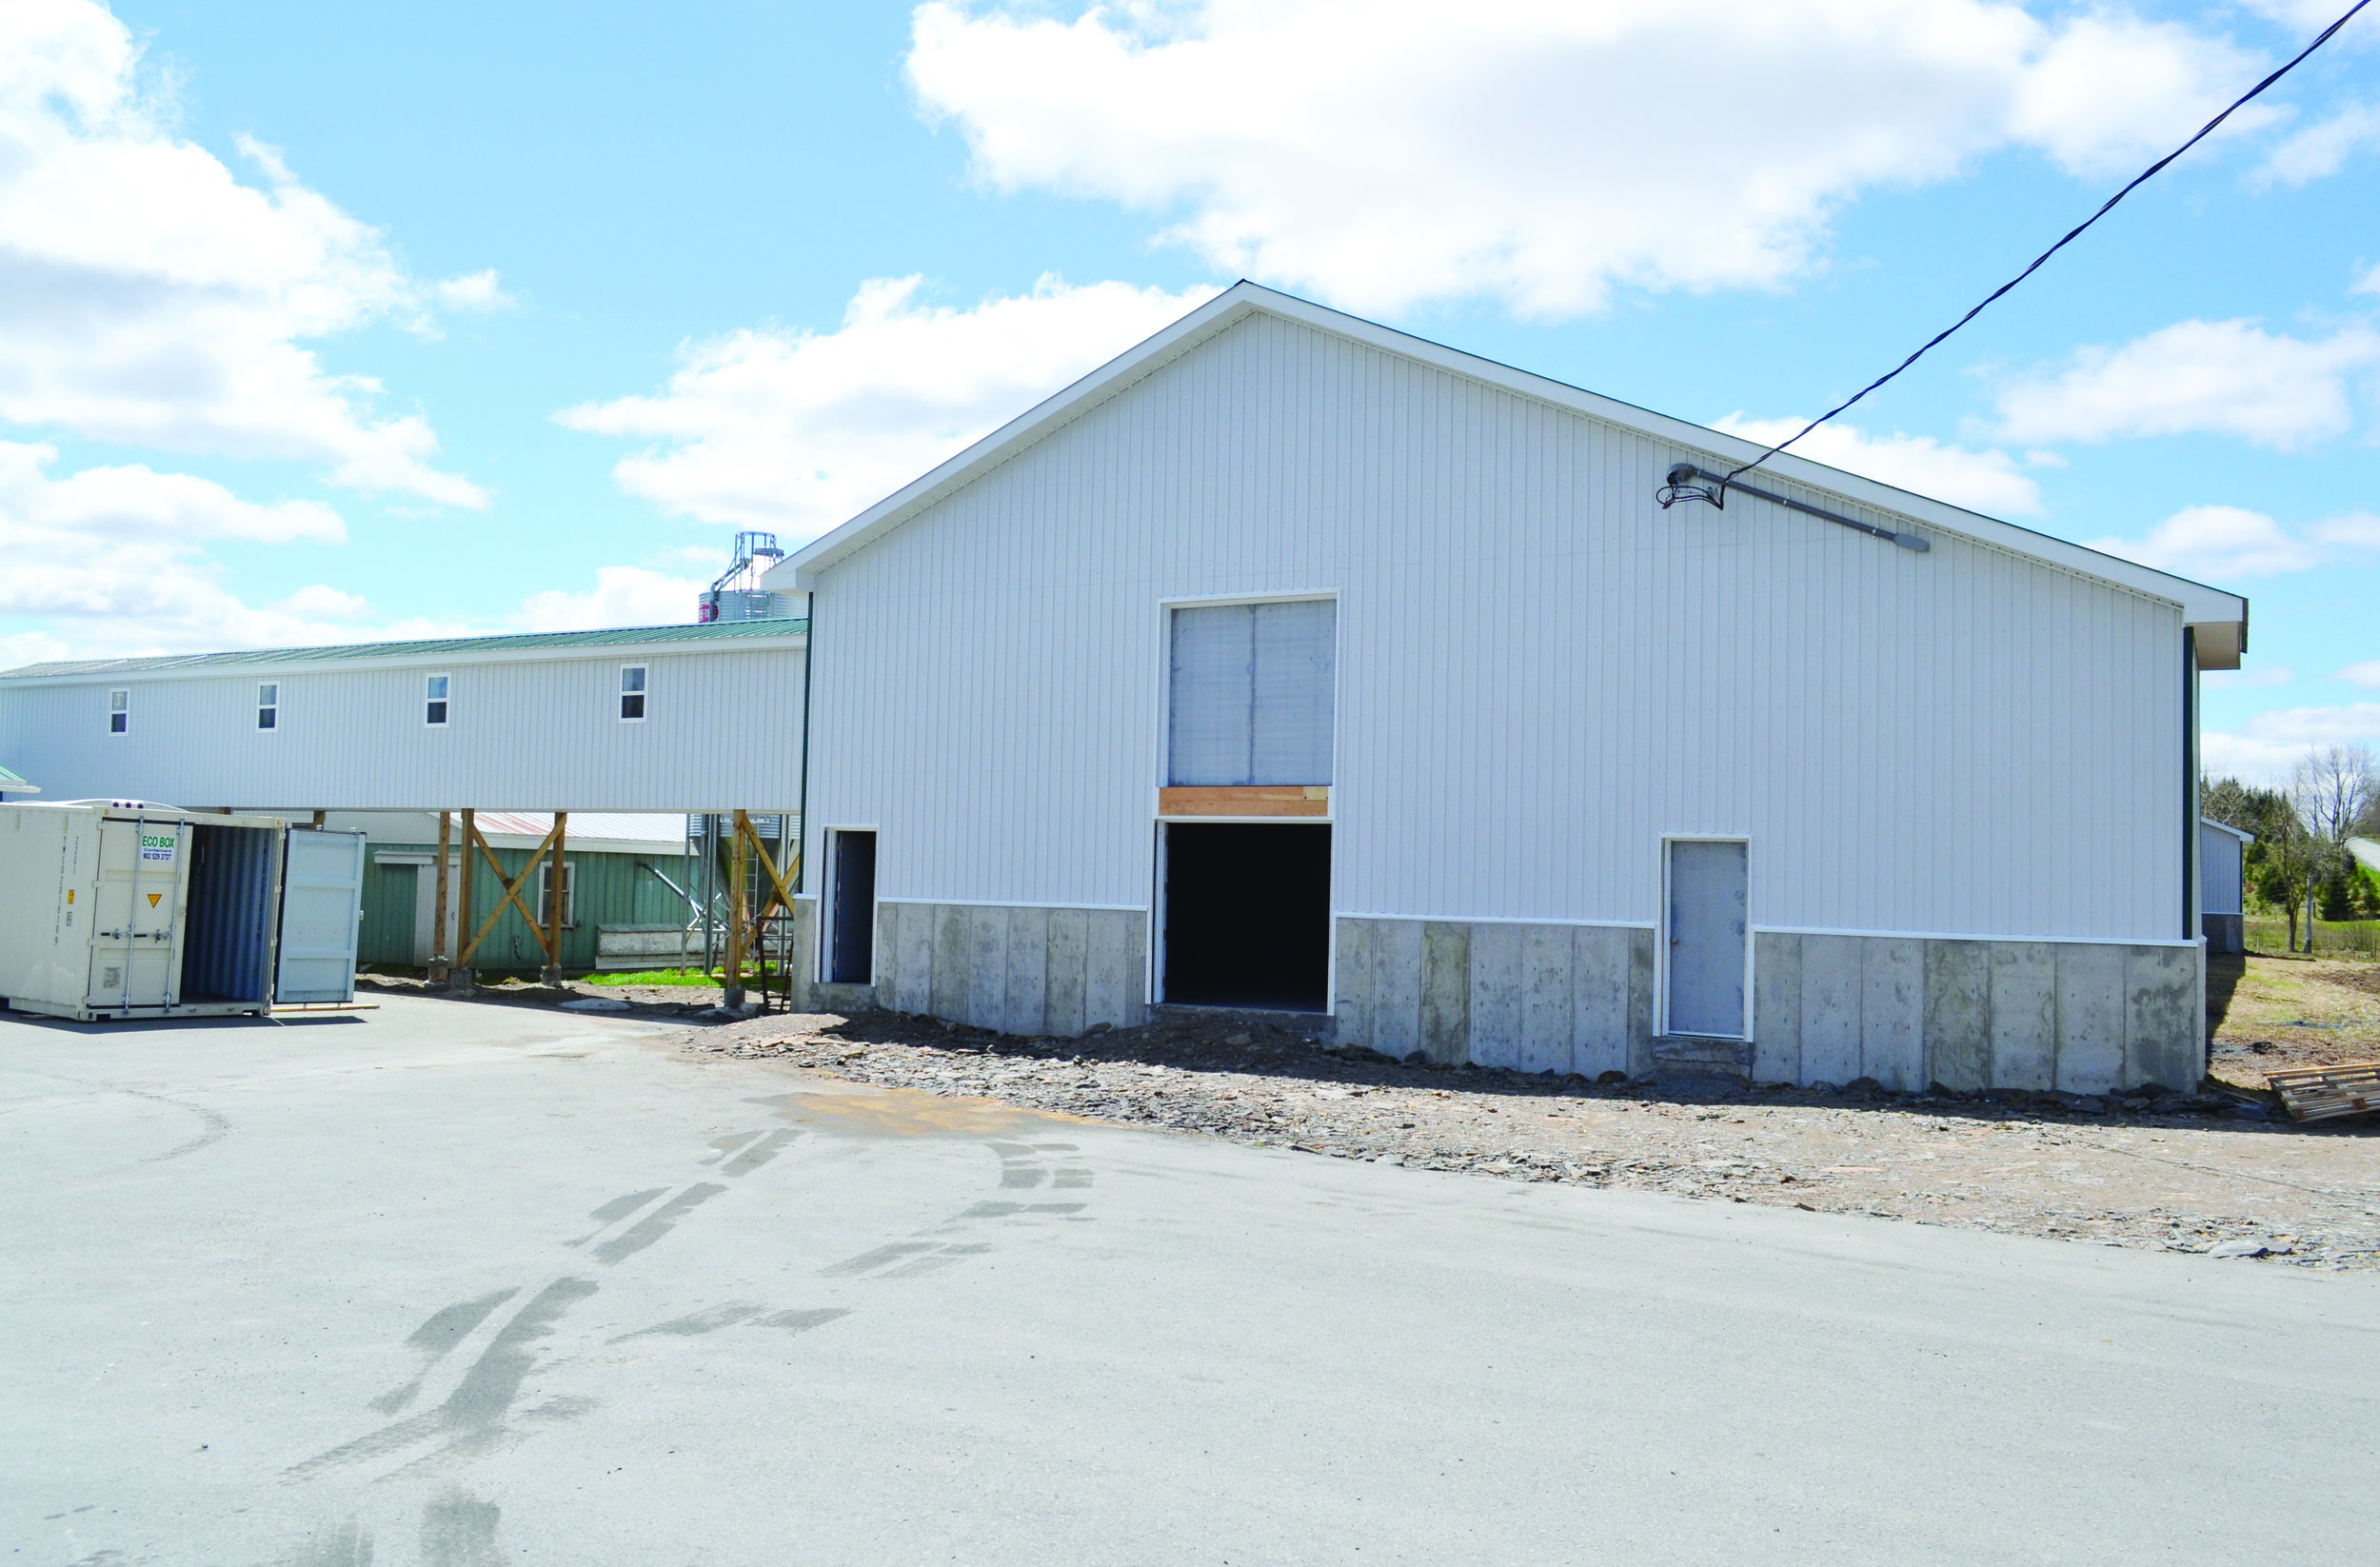 DeLong Farms invested approximately $1.8 million in this new layer barn